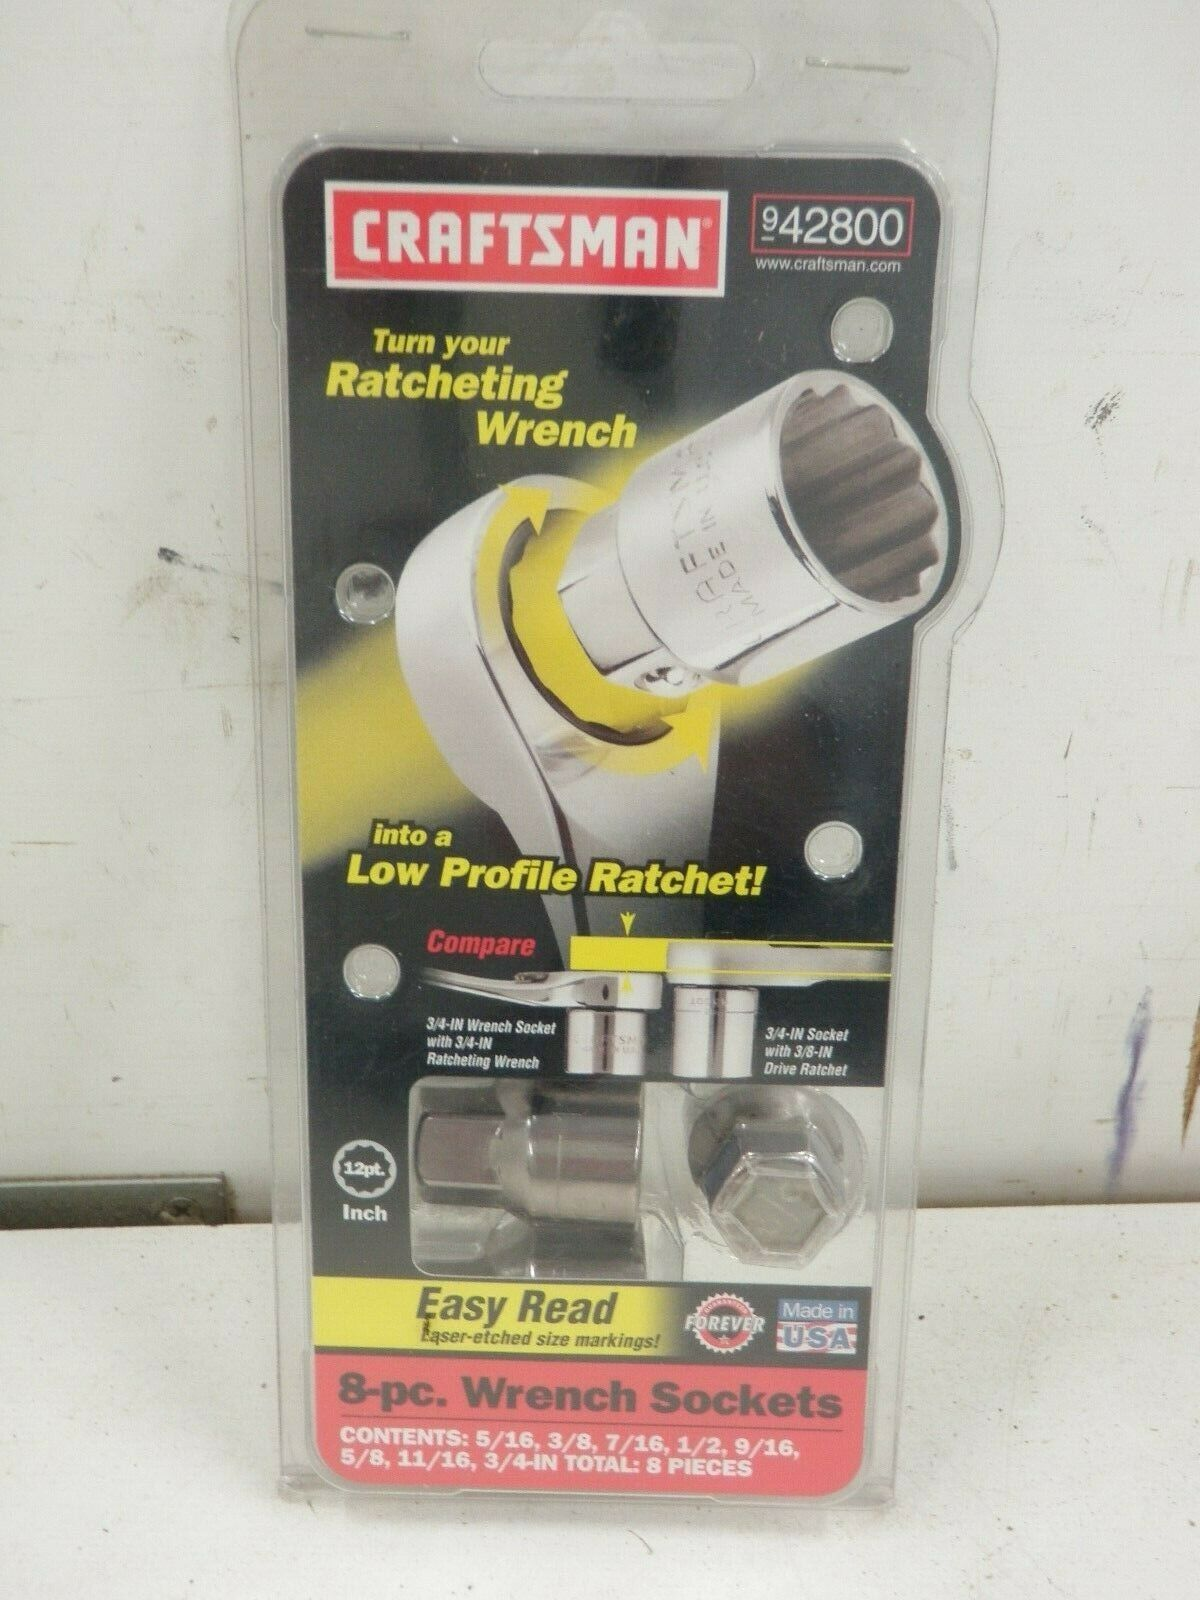 Craftsman 8 Piece Wrench Sockets   42800